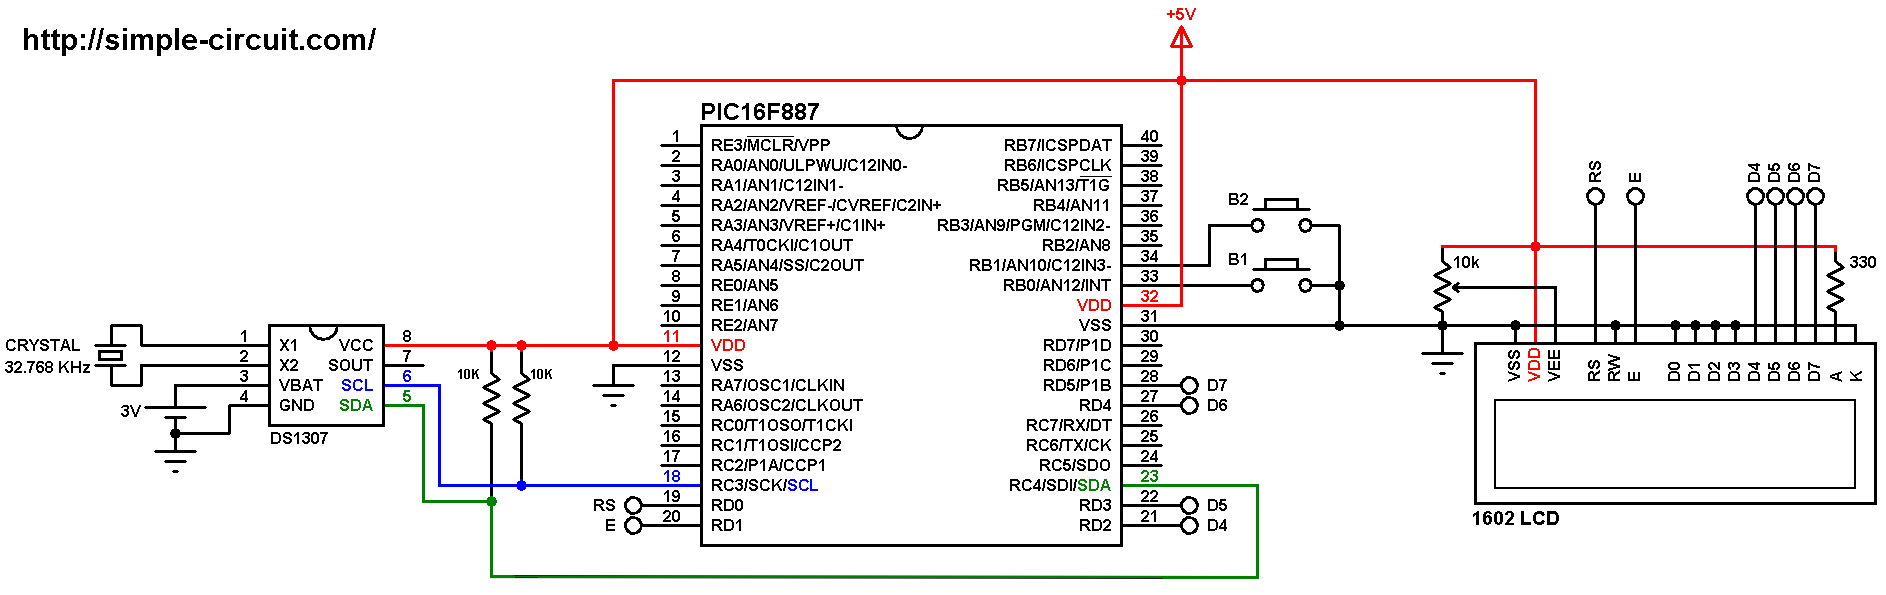 Interfacing DS1307/DS3231 RTC with PIC MCU | MPLAB Projects